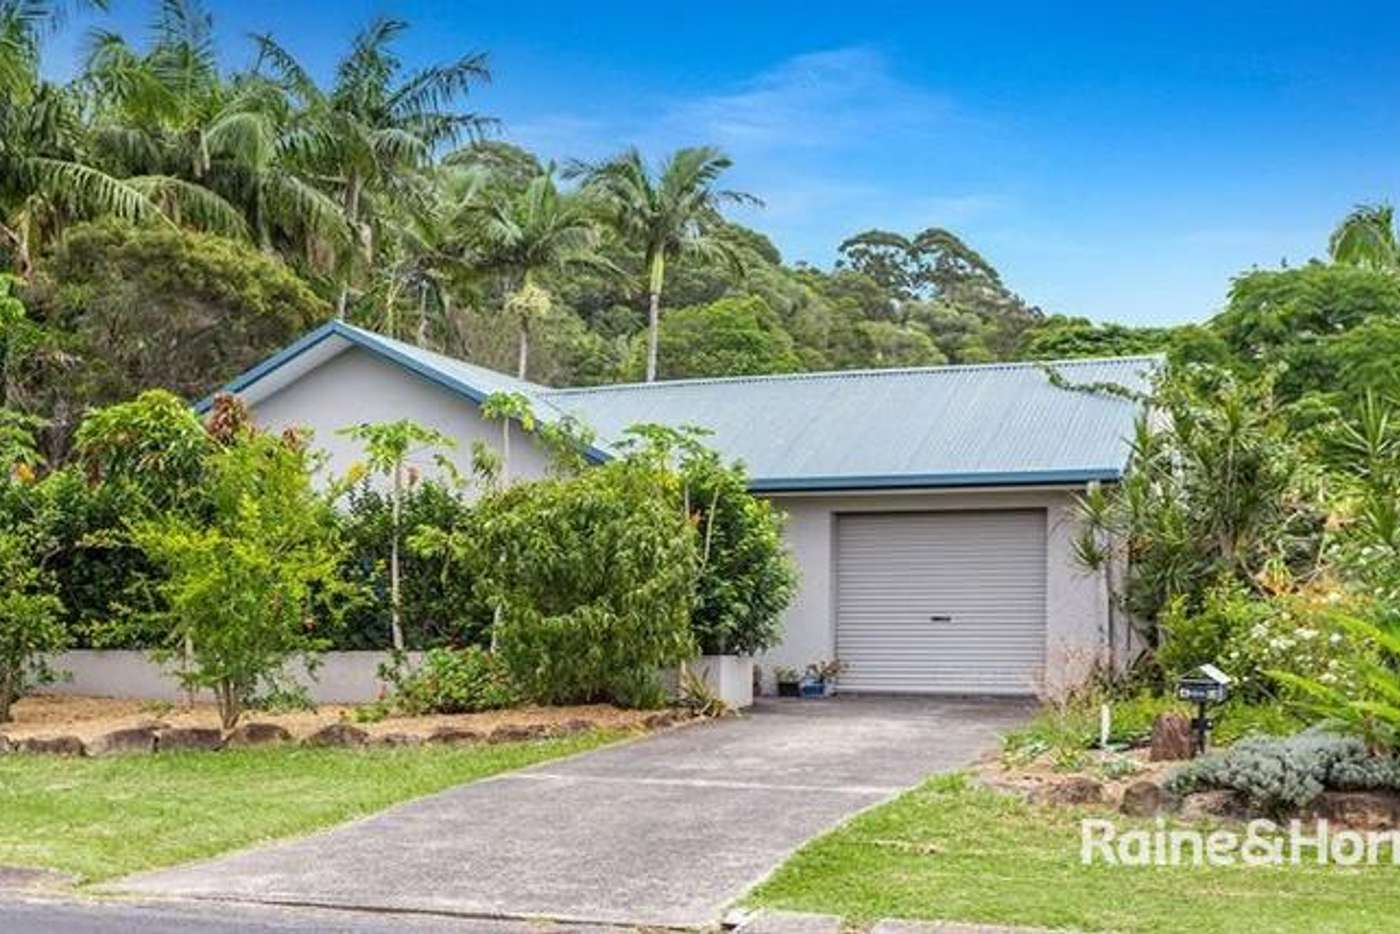 Seventh view of Homely house listing, 40 Wahlooga Way, Ocean Shores NSW 2483